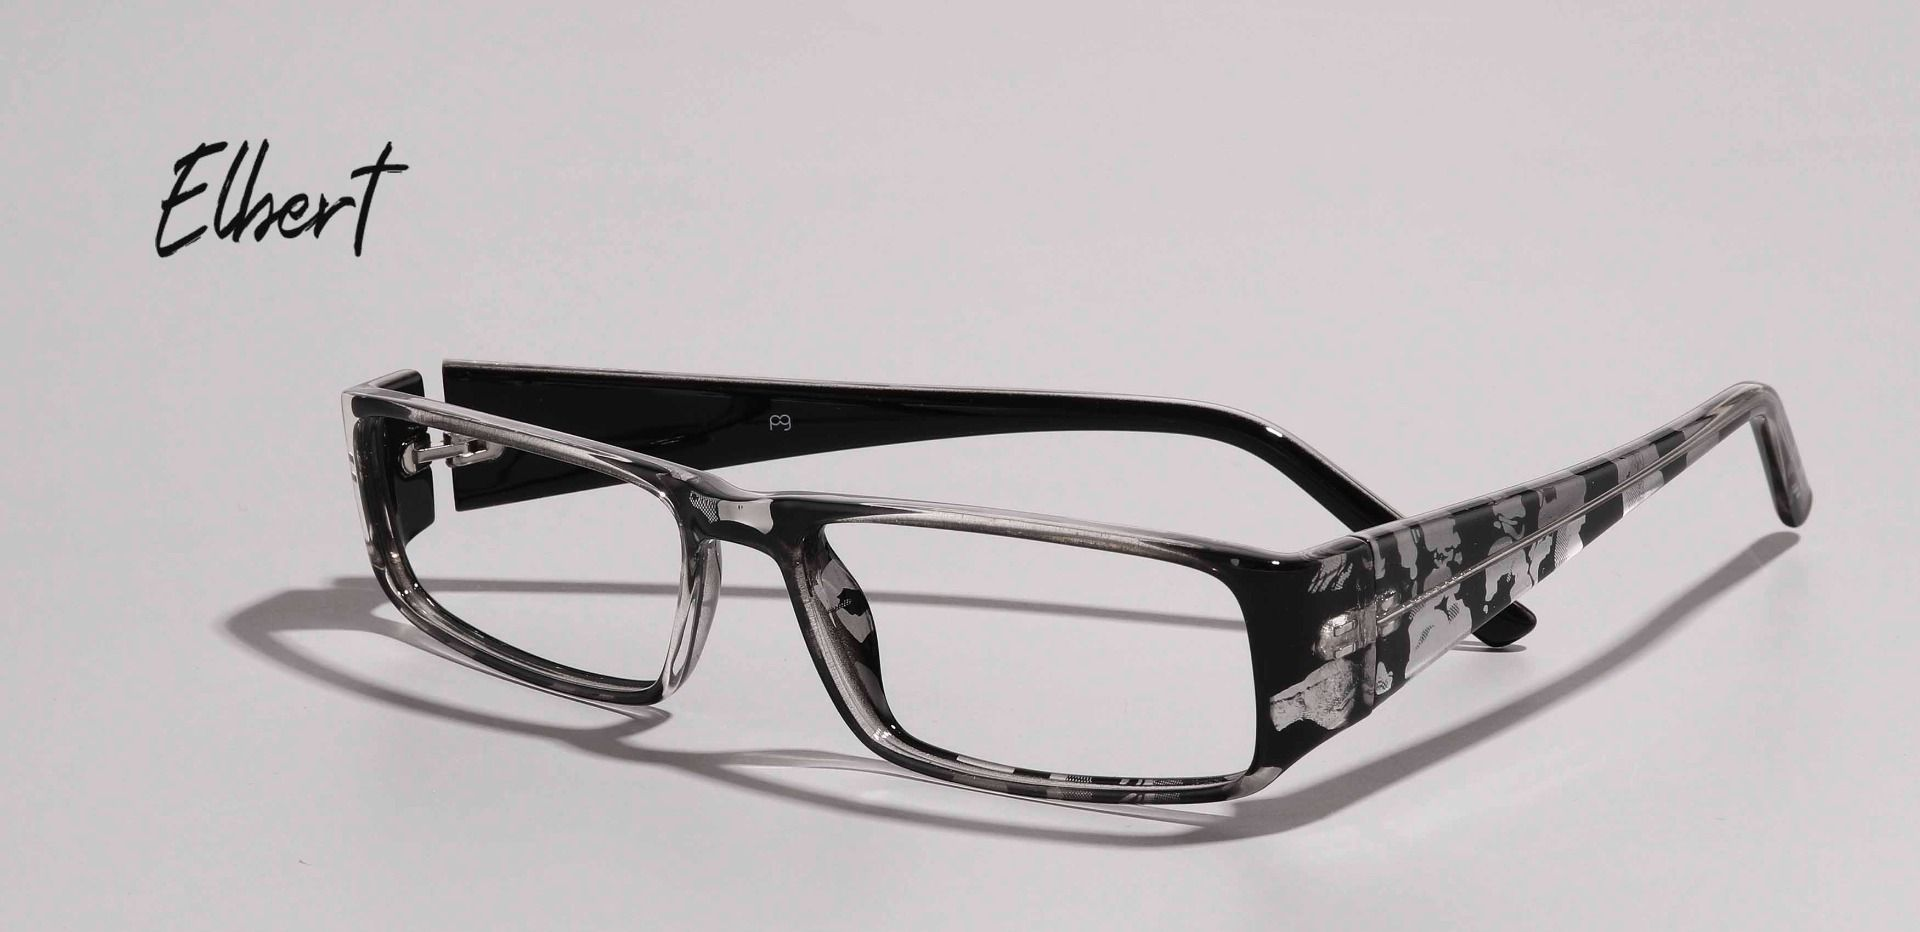 Elbert Rectangle Single Vision Glasses - Black